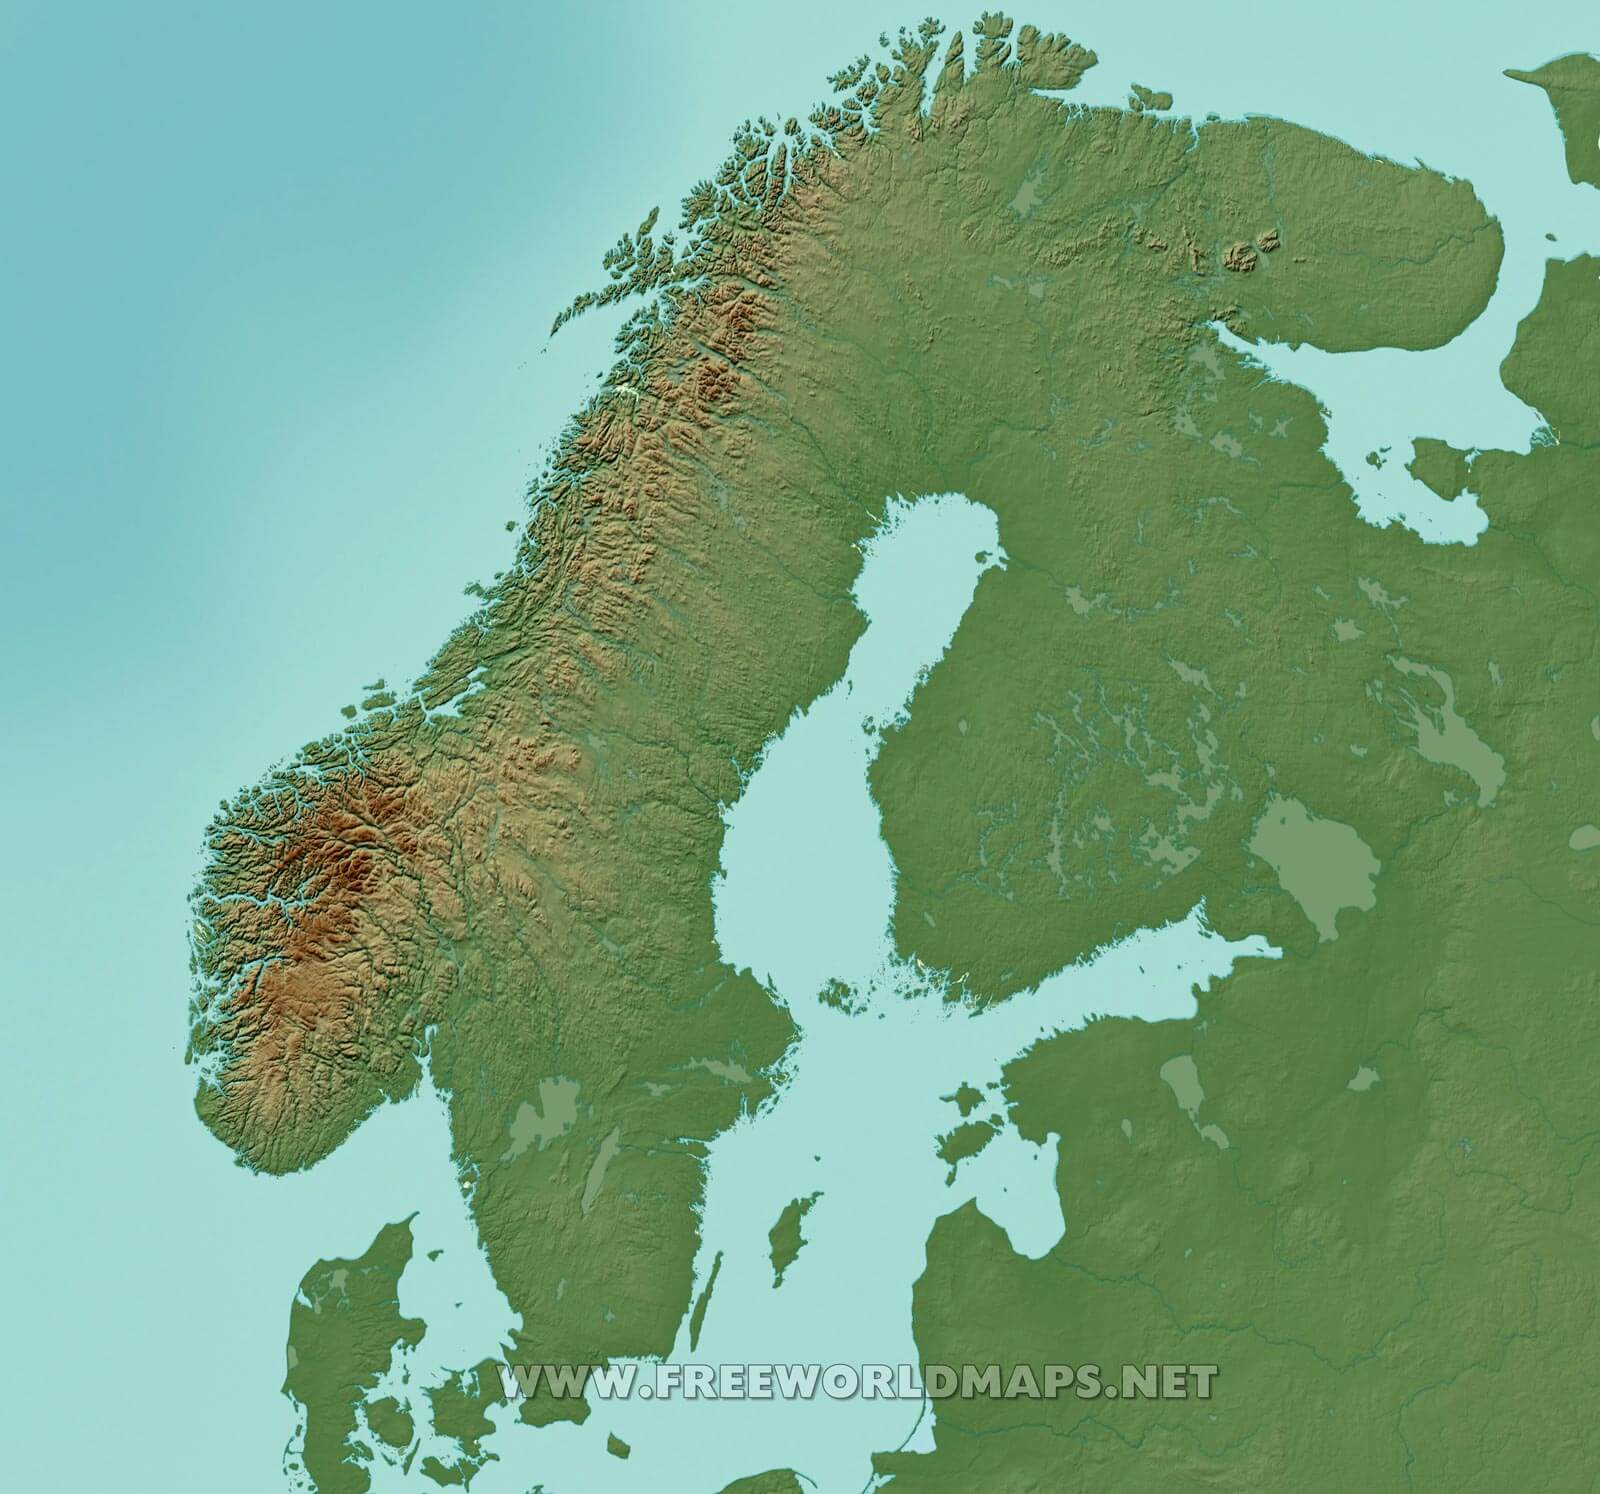 image about Scandinavia Map Printable named Free of charge Printable Maps of Scandinavia